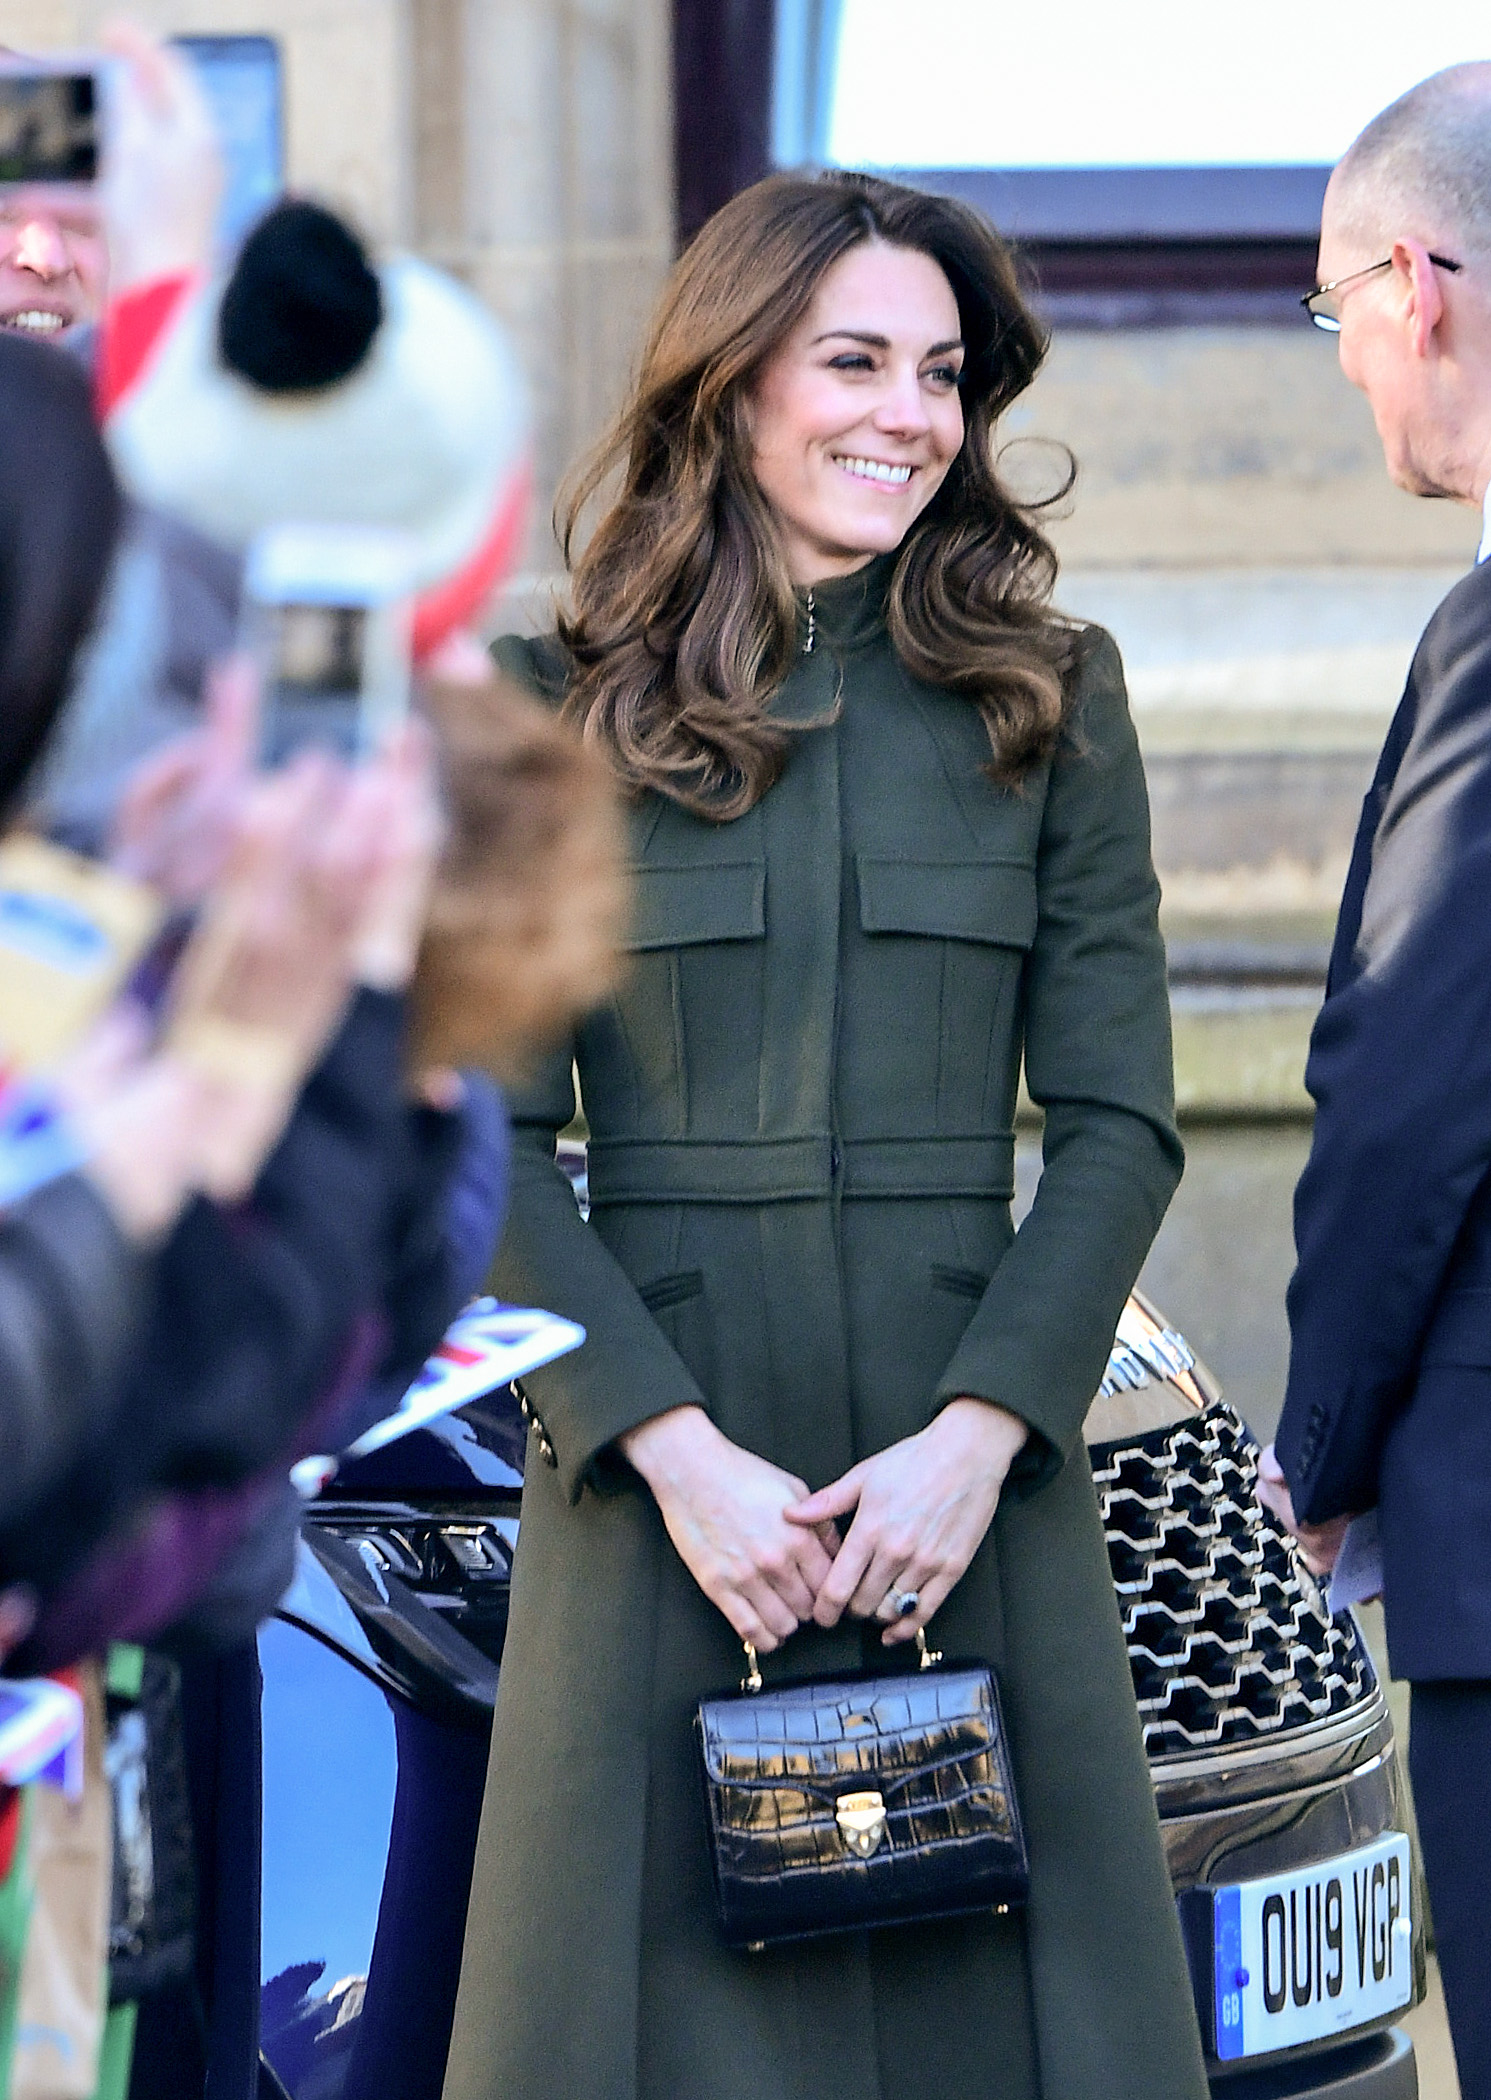 BRADFORD, ENGLAND - JANUARY 15: The Duchess of Cambridge visits City Hall in Bradford's Centenary Square, to join a group of young people from across the community to hear about life in Bradford, on January 15, 2020 in Bradford, United Kingdom. (Photo by Samir Hussein/WireImage)